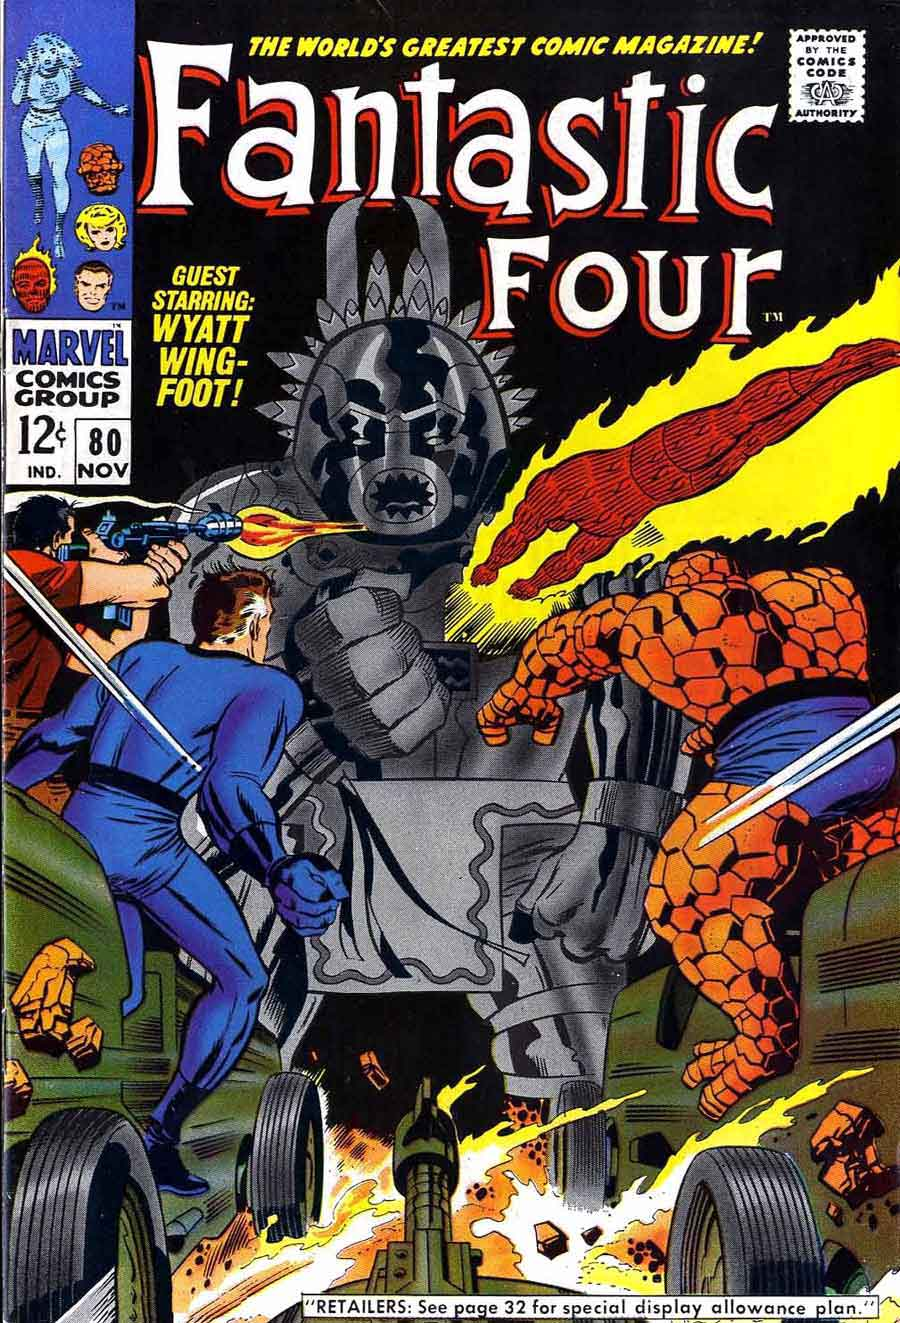 Fantastc Four v1 #80 marvel 1960s silver age comic book cover art by Jack Kirby